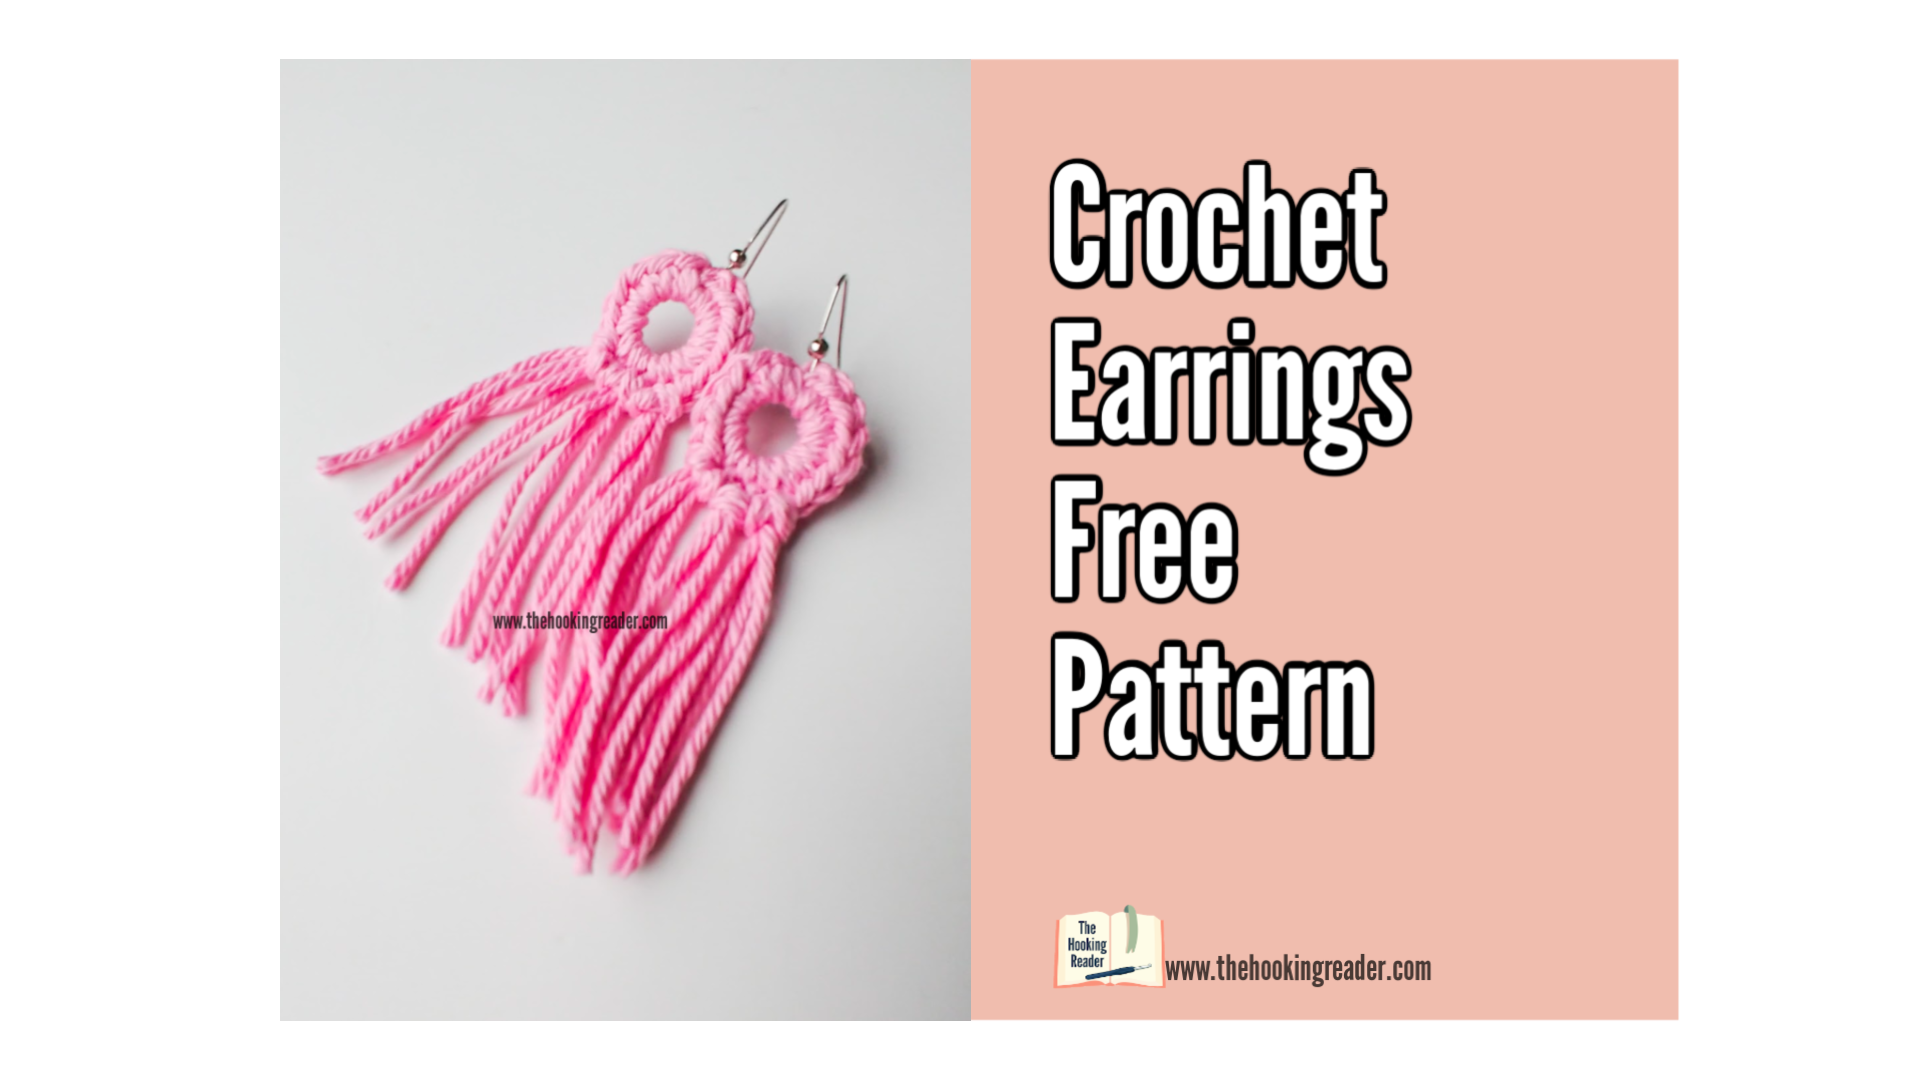 Crochet Earrings Free Pattern